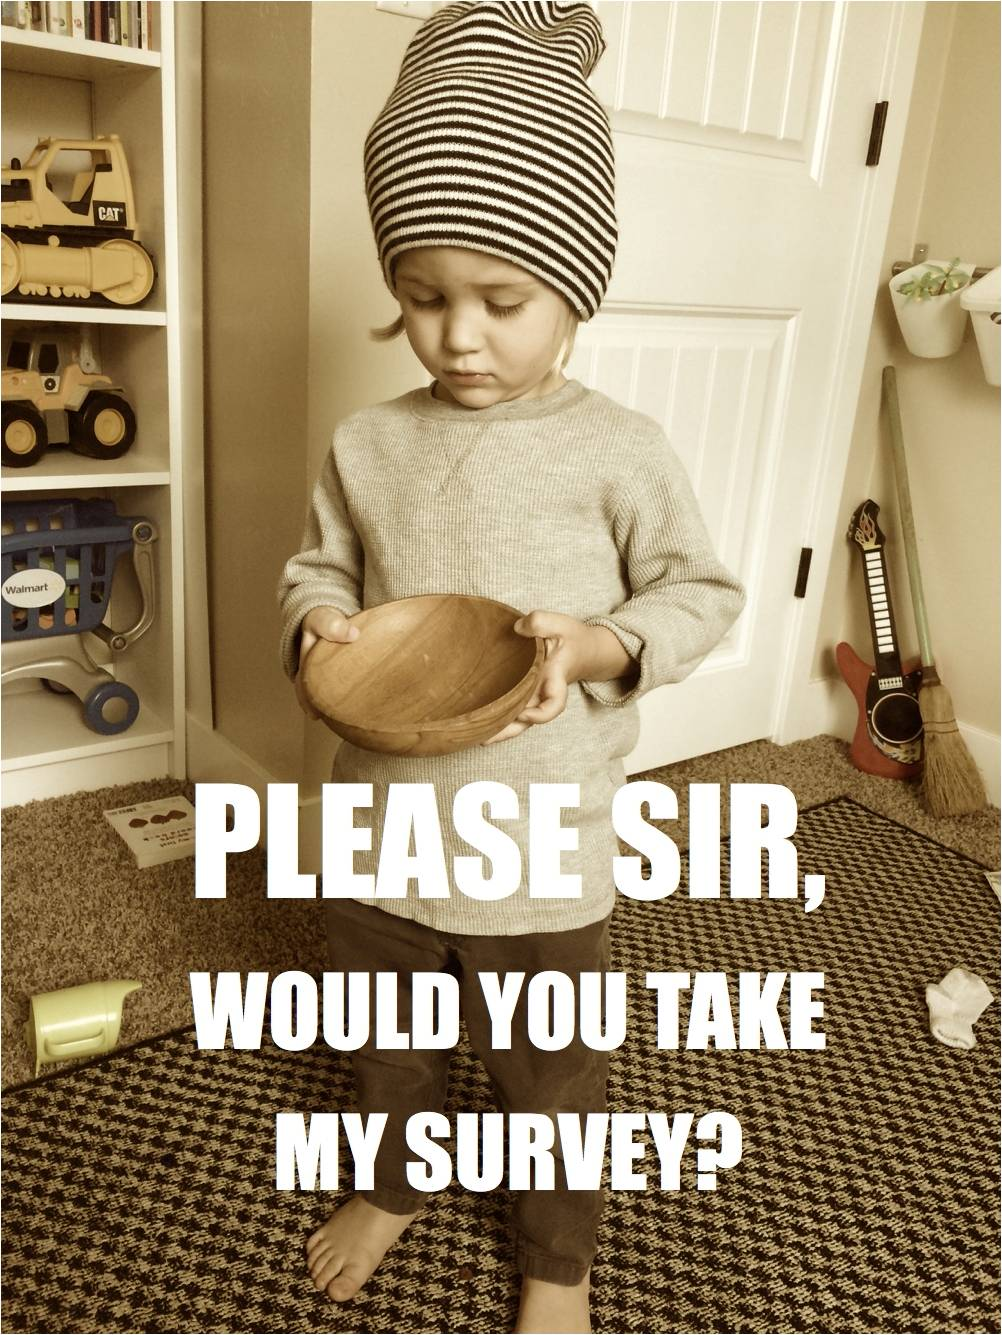 Can you please do my survey?